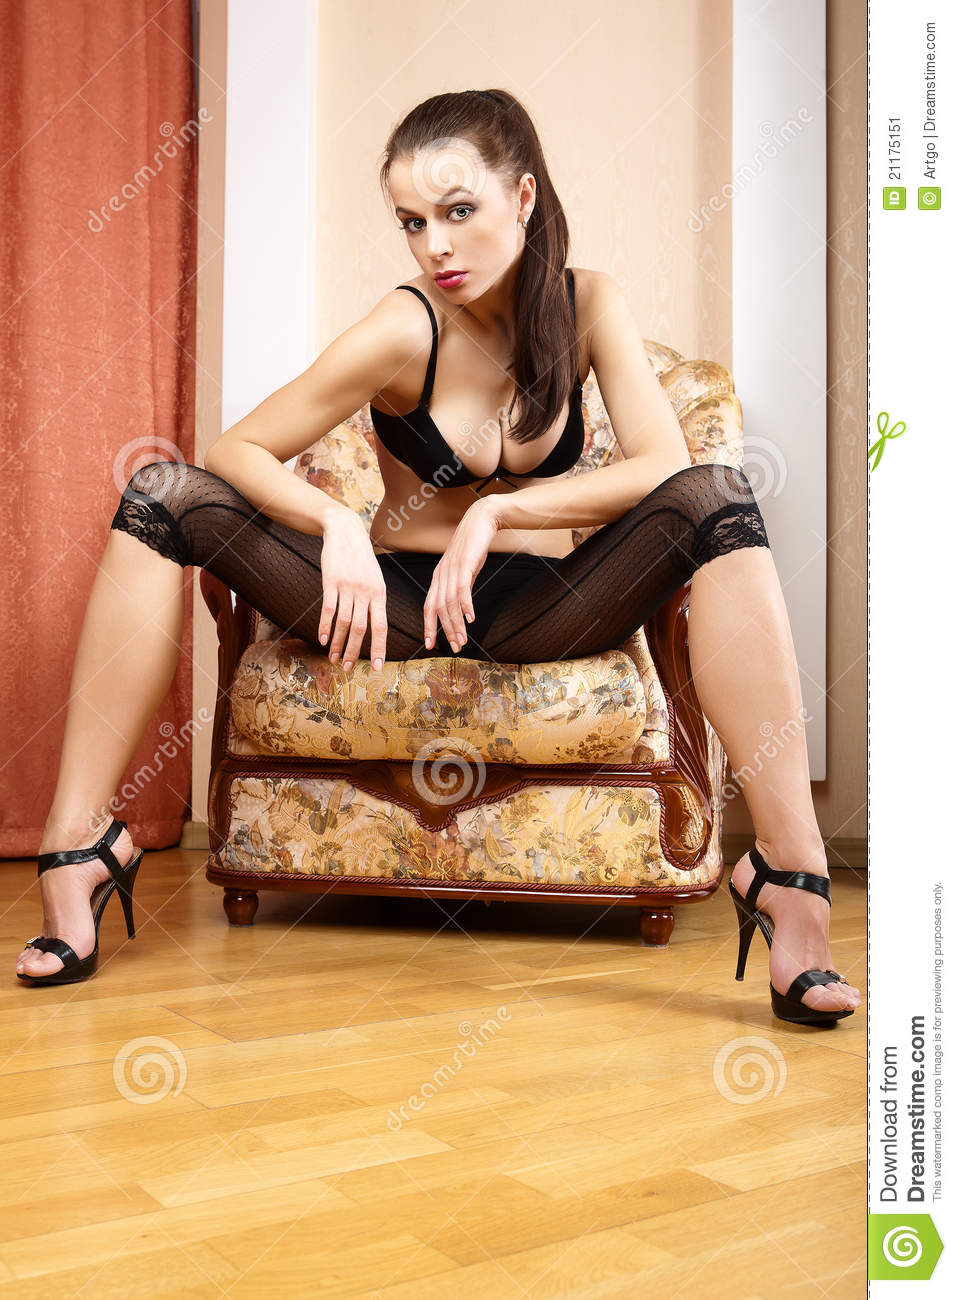 girl is sitting in a chair.